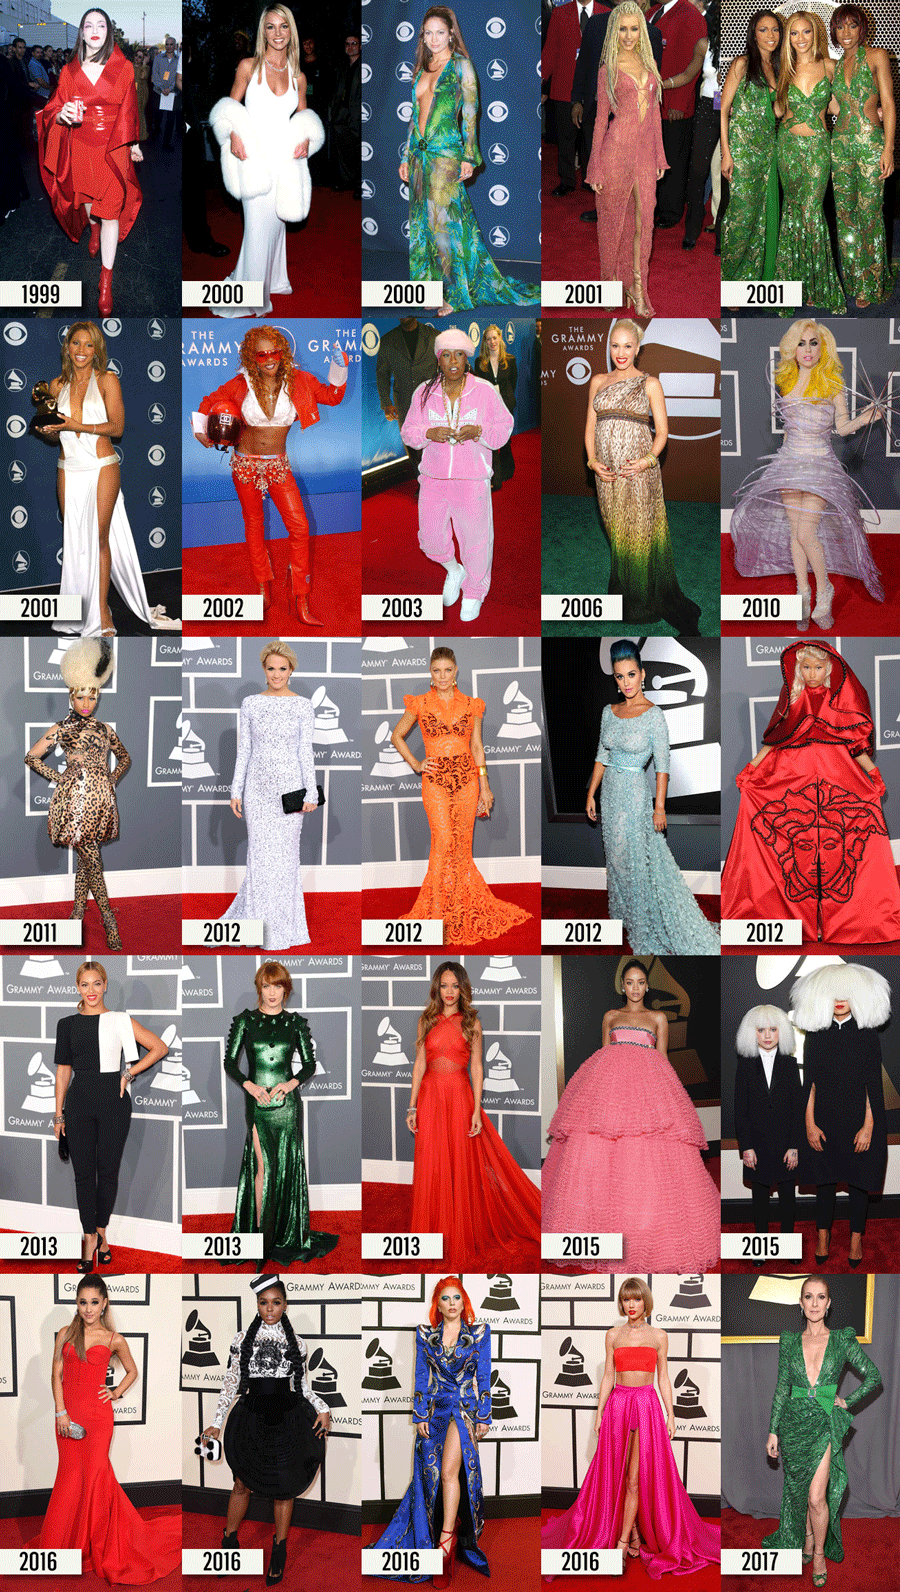 Grammy Awards Iconic Looks Poll